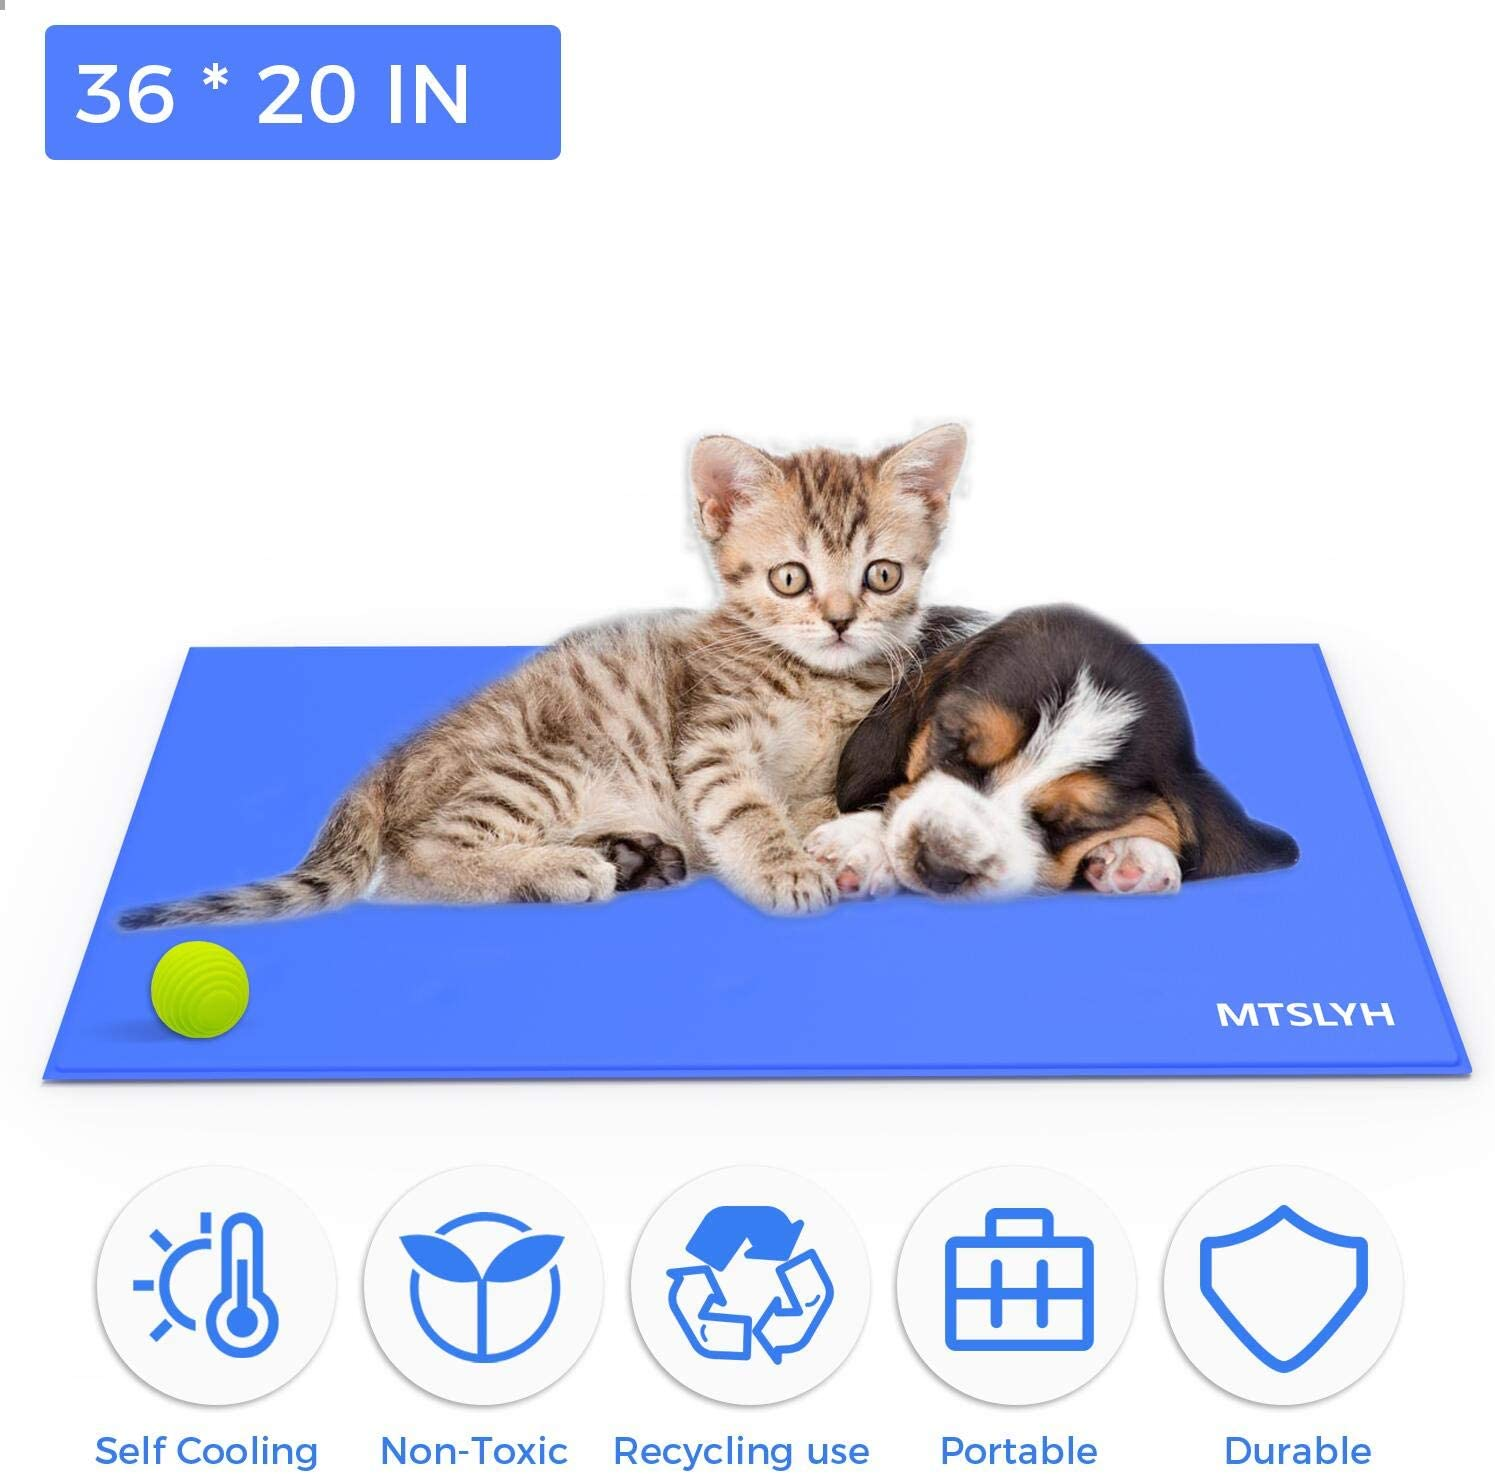 36 X 20 Dog Self Cooling Mat Cooling Mat for Dog Dog Cool Pad Pet Ice Mat Pet Pad for Crates Yerloa Pet Cooling Mat and 38 X 32 96 * 81cm large 90 * 50cm Kennels and Beds